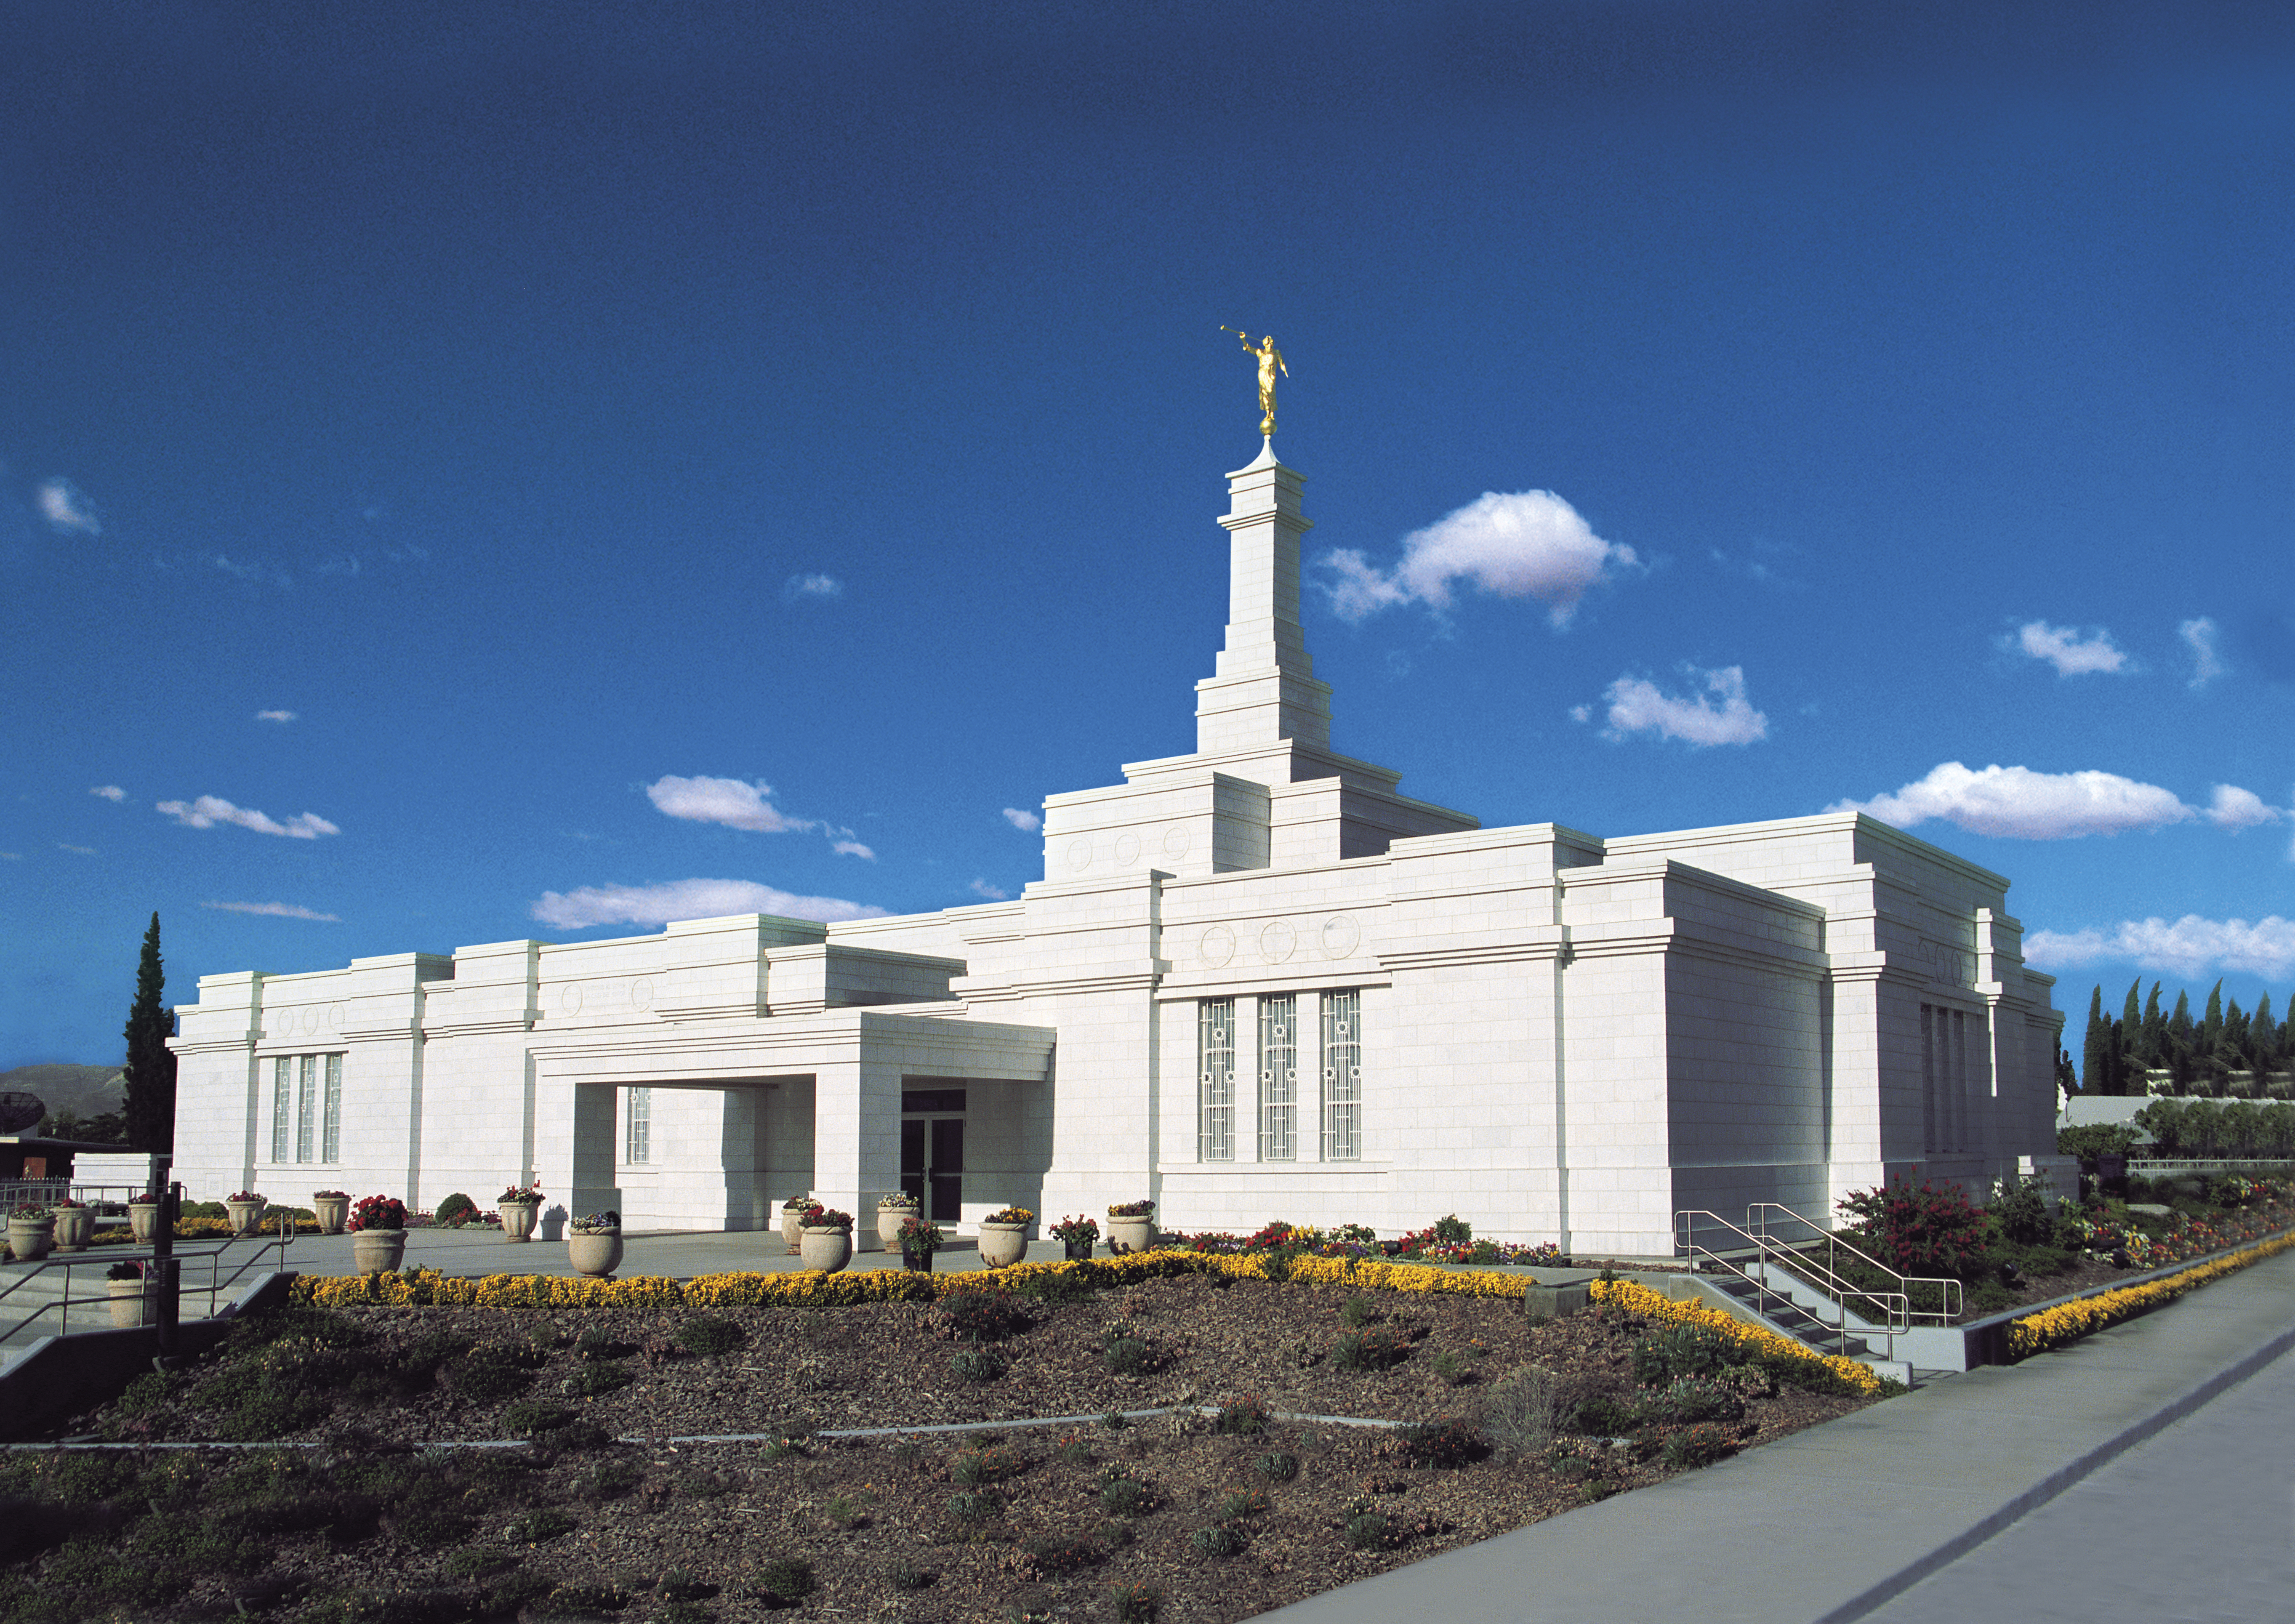 An exterior view of the Ciudad Juárez Mexico Temple in the daytime.